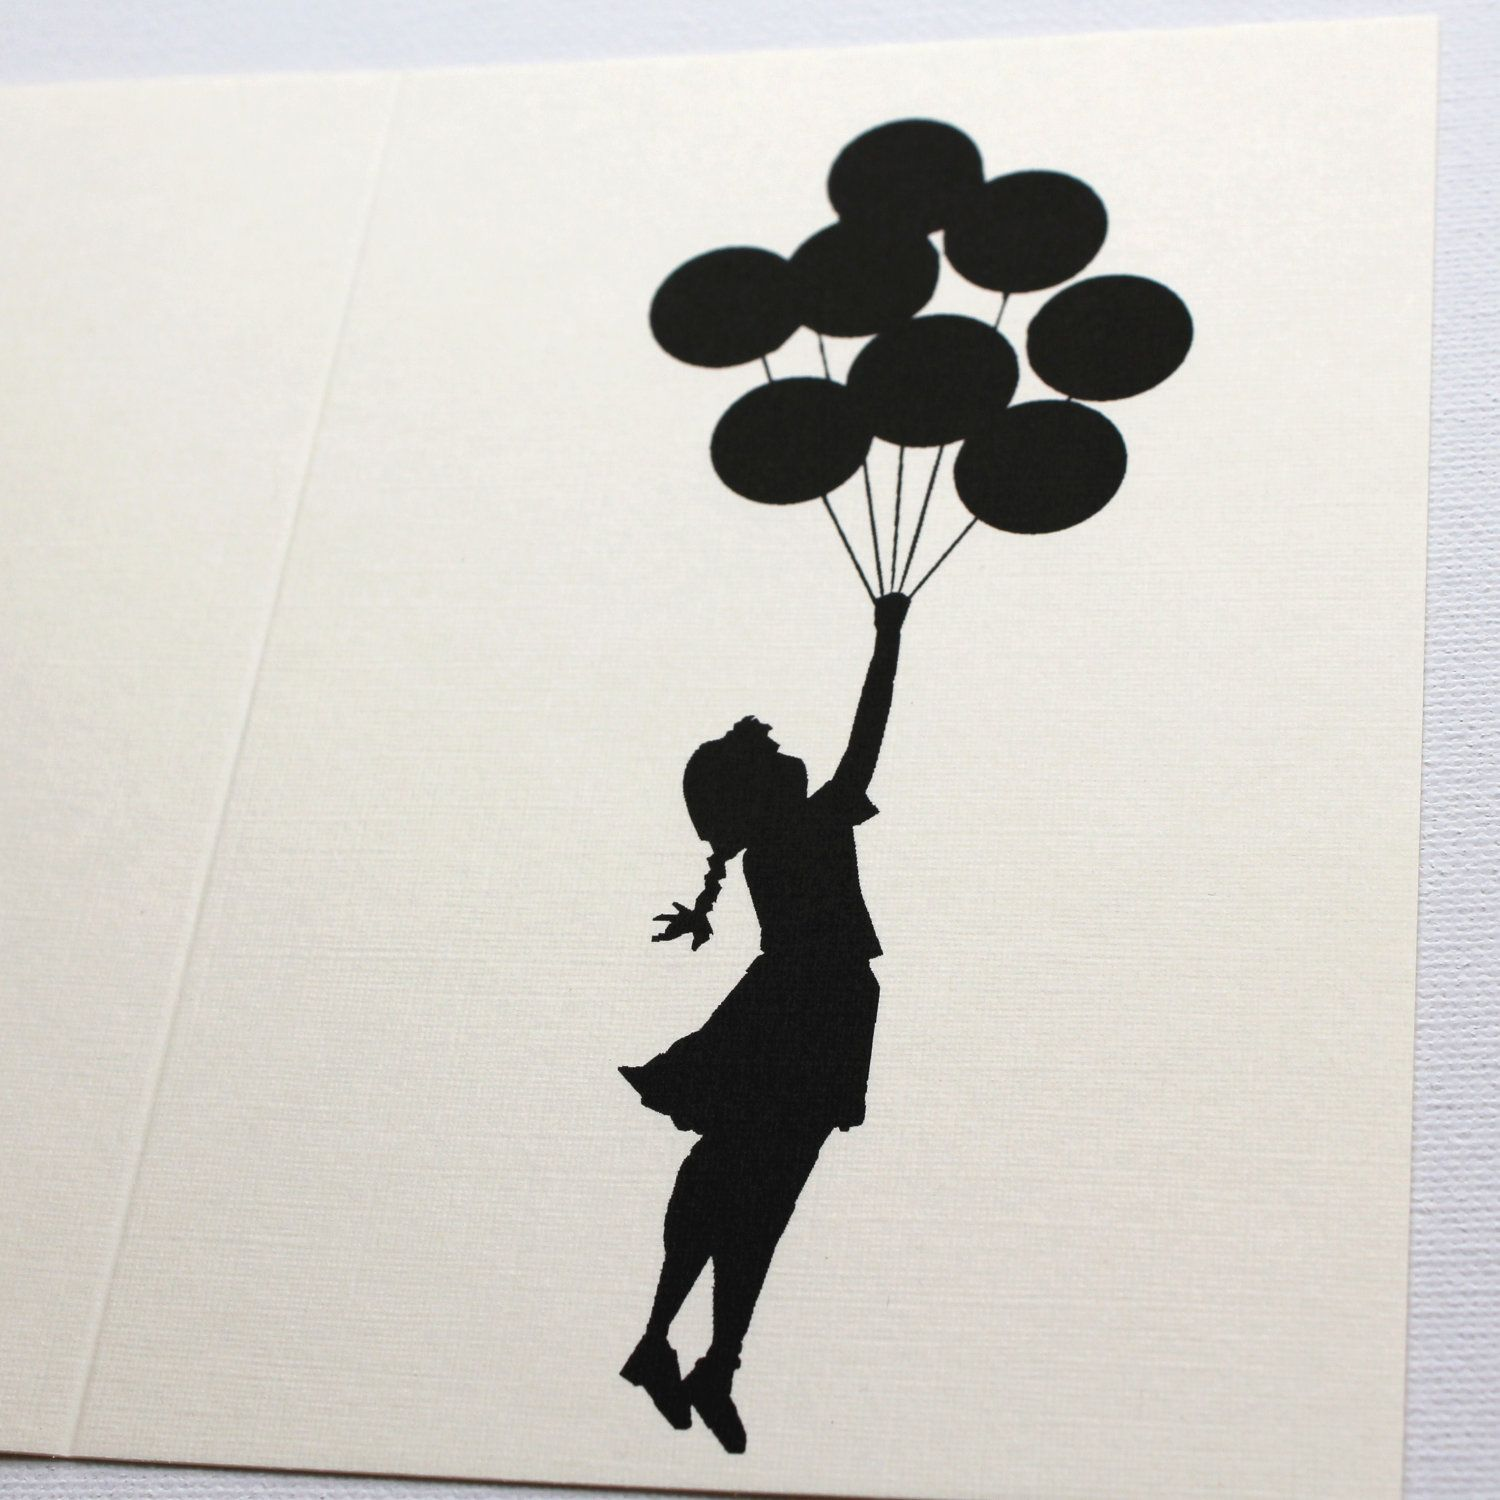 images for gt little girl silhouette balloon alta mesa